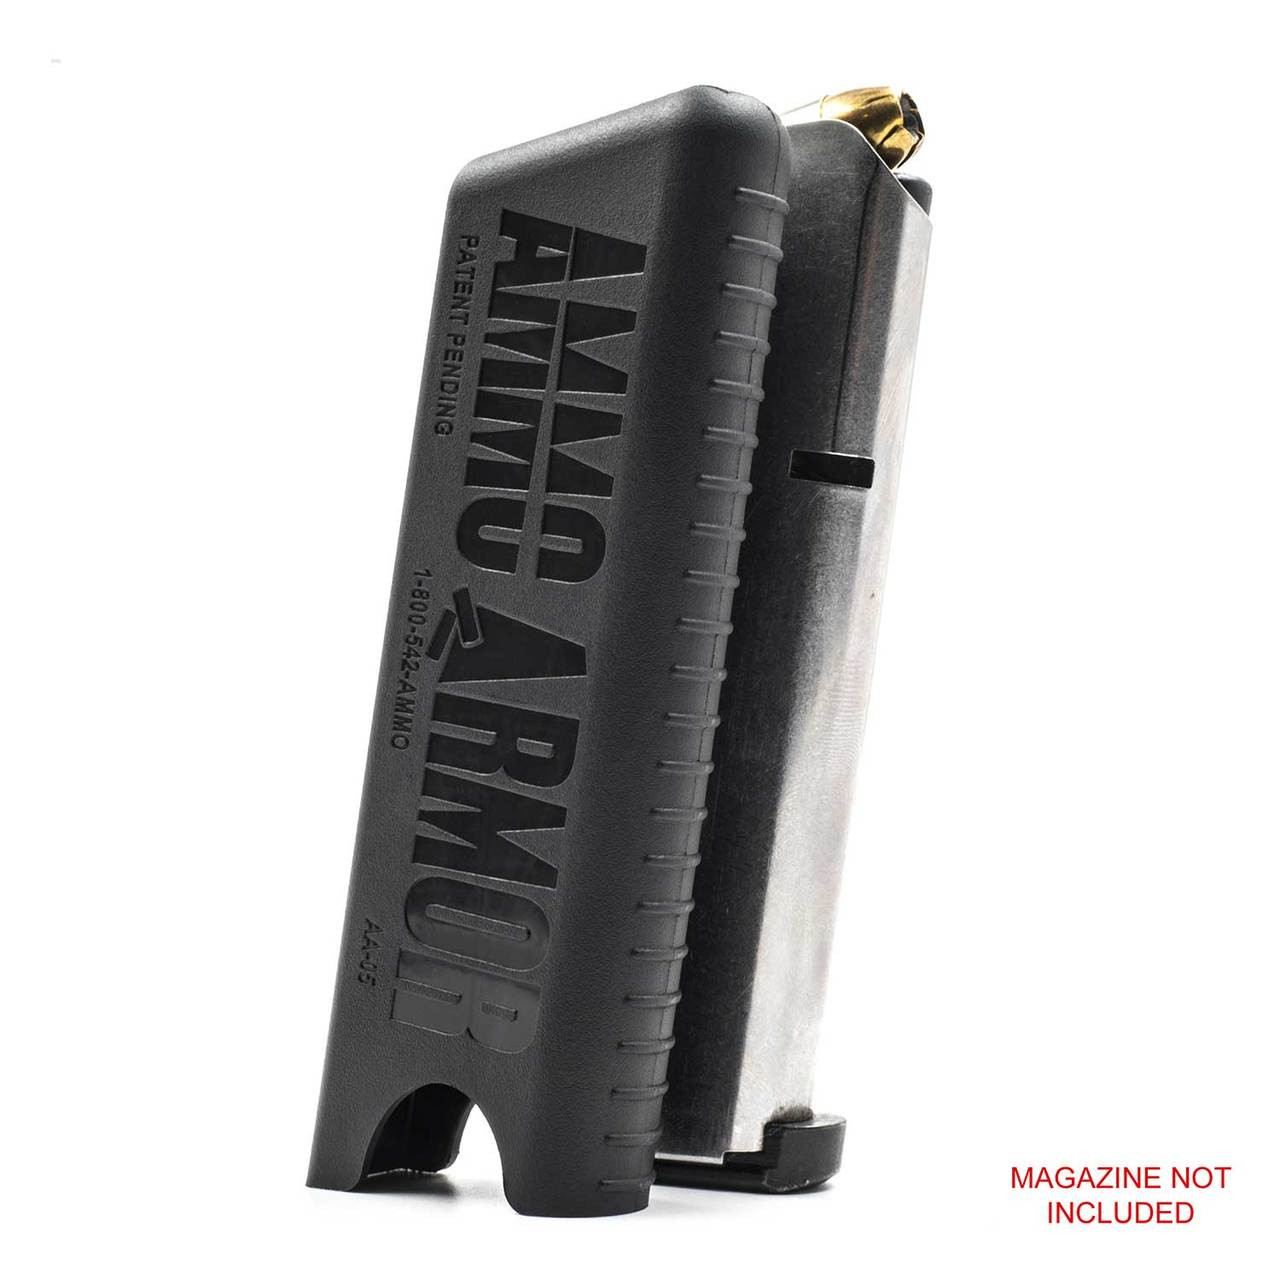 Sig P220 Compact Magazine Protector